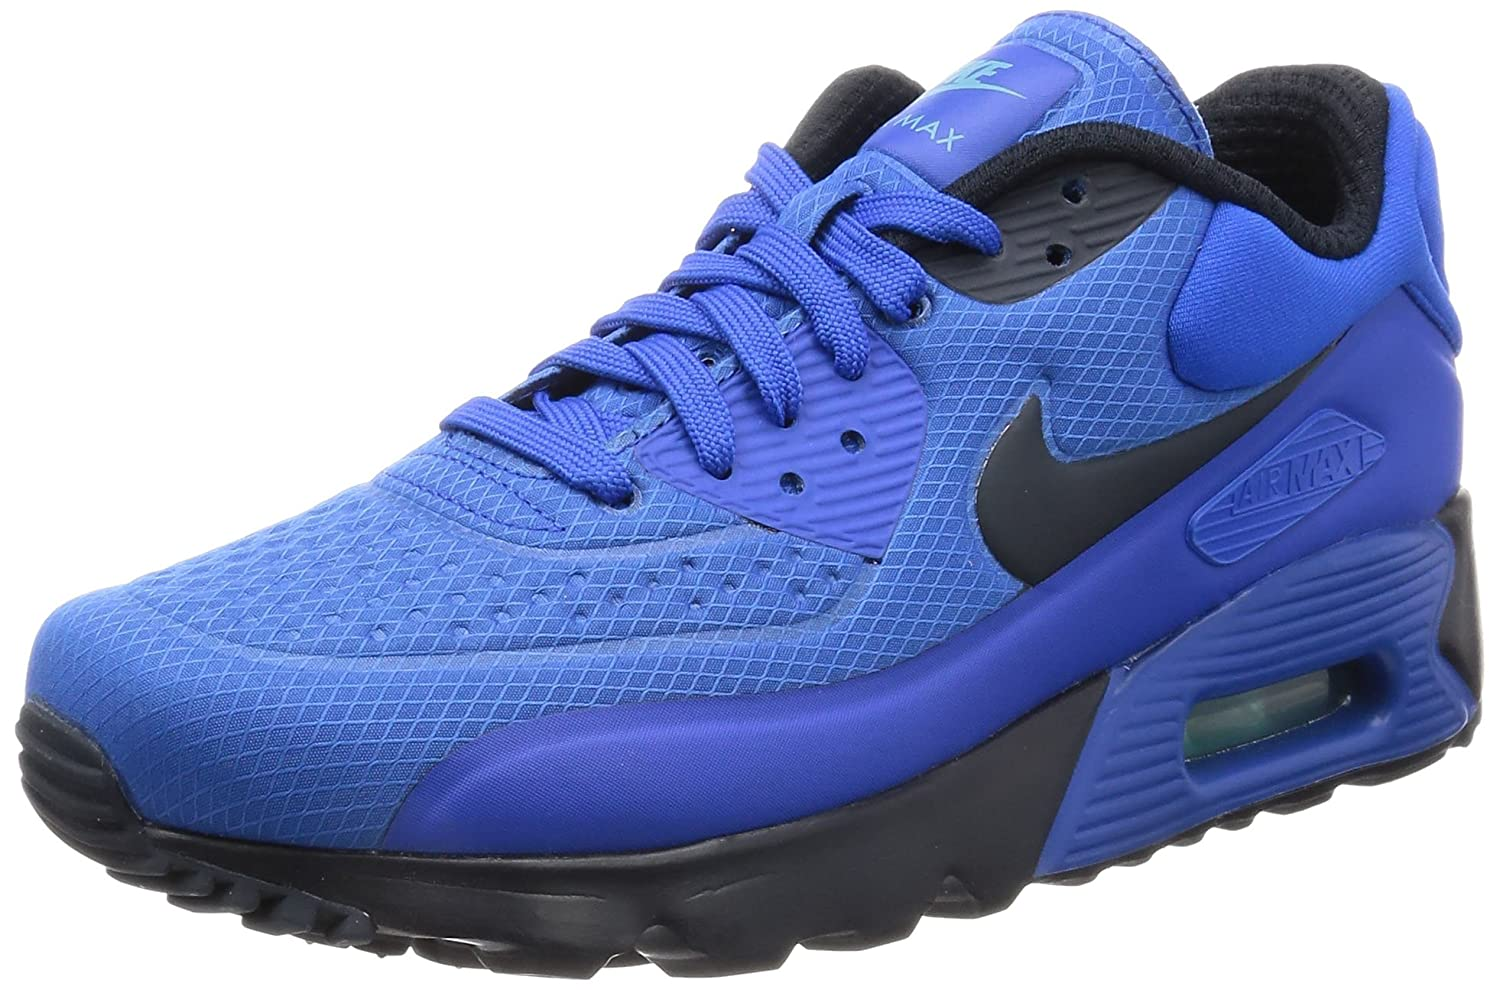 meet 16a52 b8e3c Amazon.com   Nike Men s Air Max 90 Ultra SE Hyper Cobalt Dark Obsidian  Running Shoe 10.5 Men US   Road Running